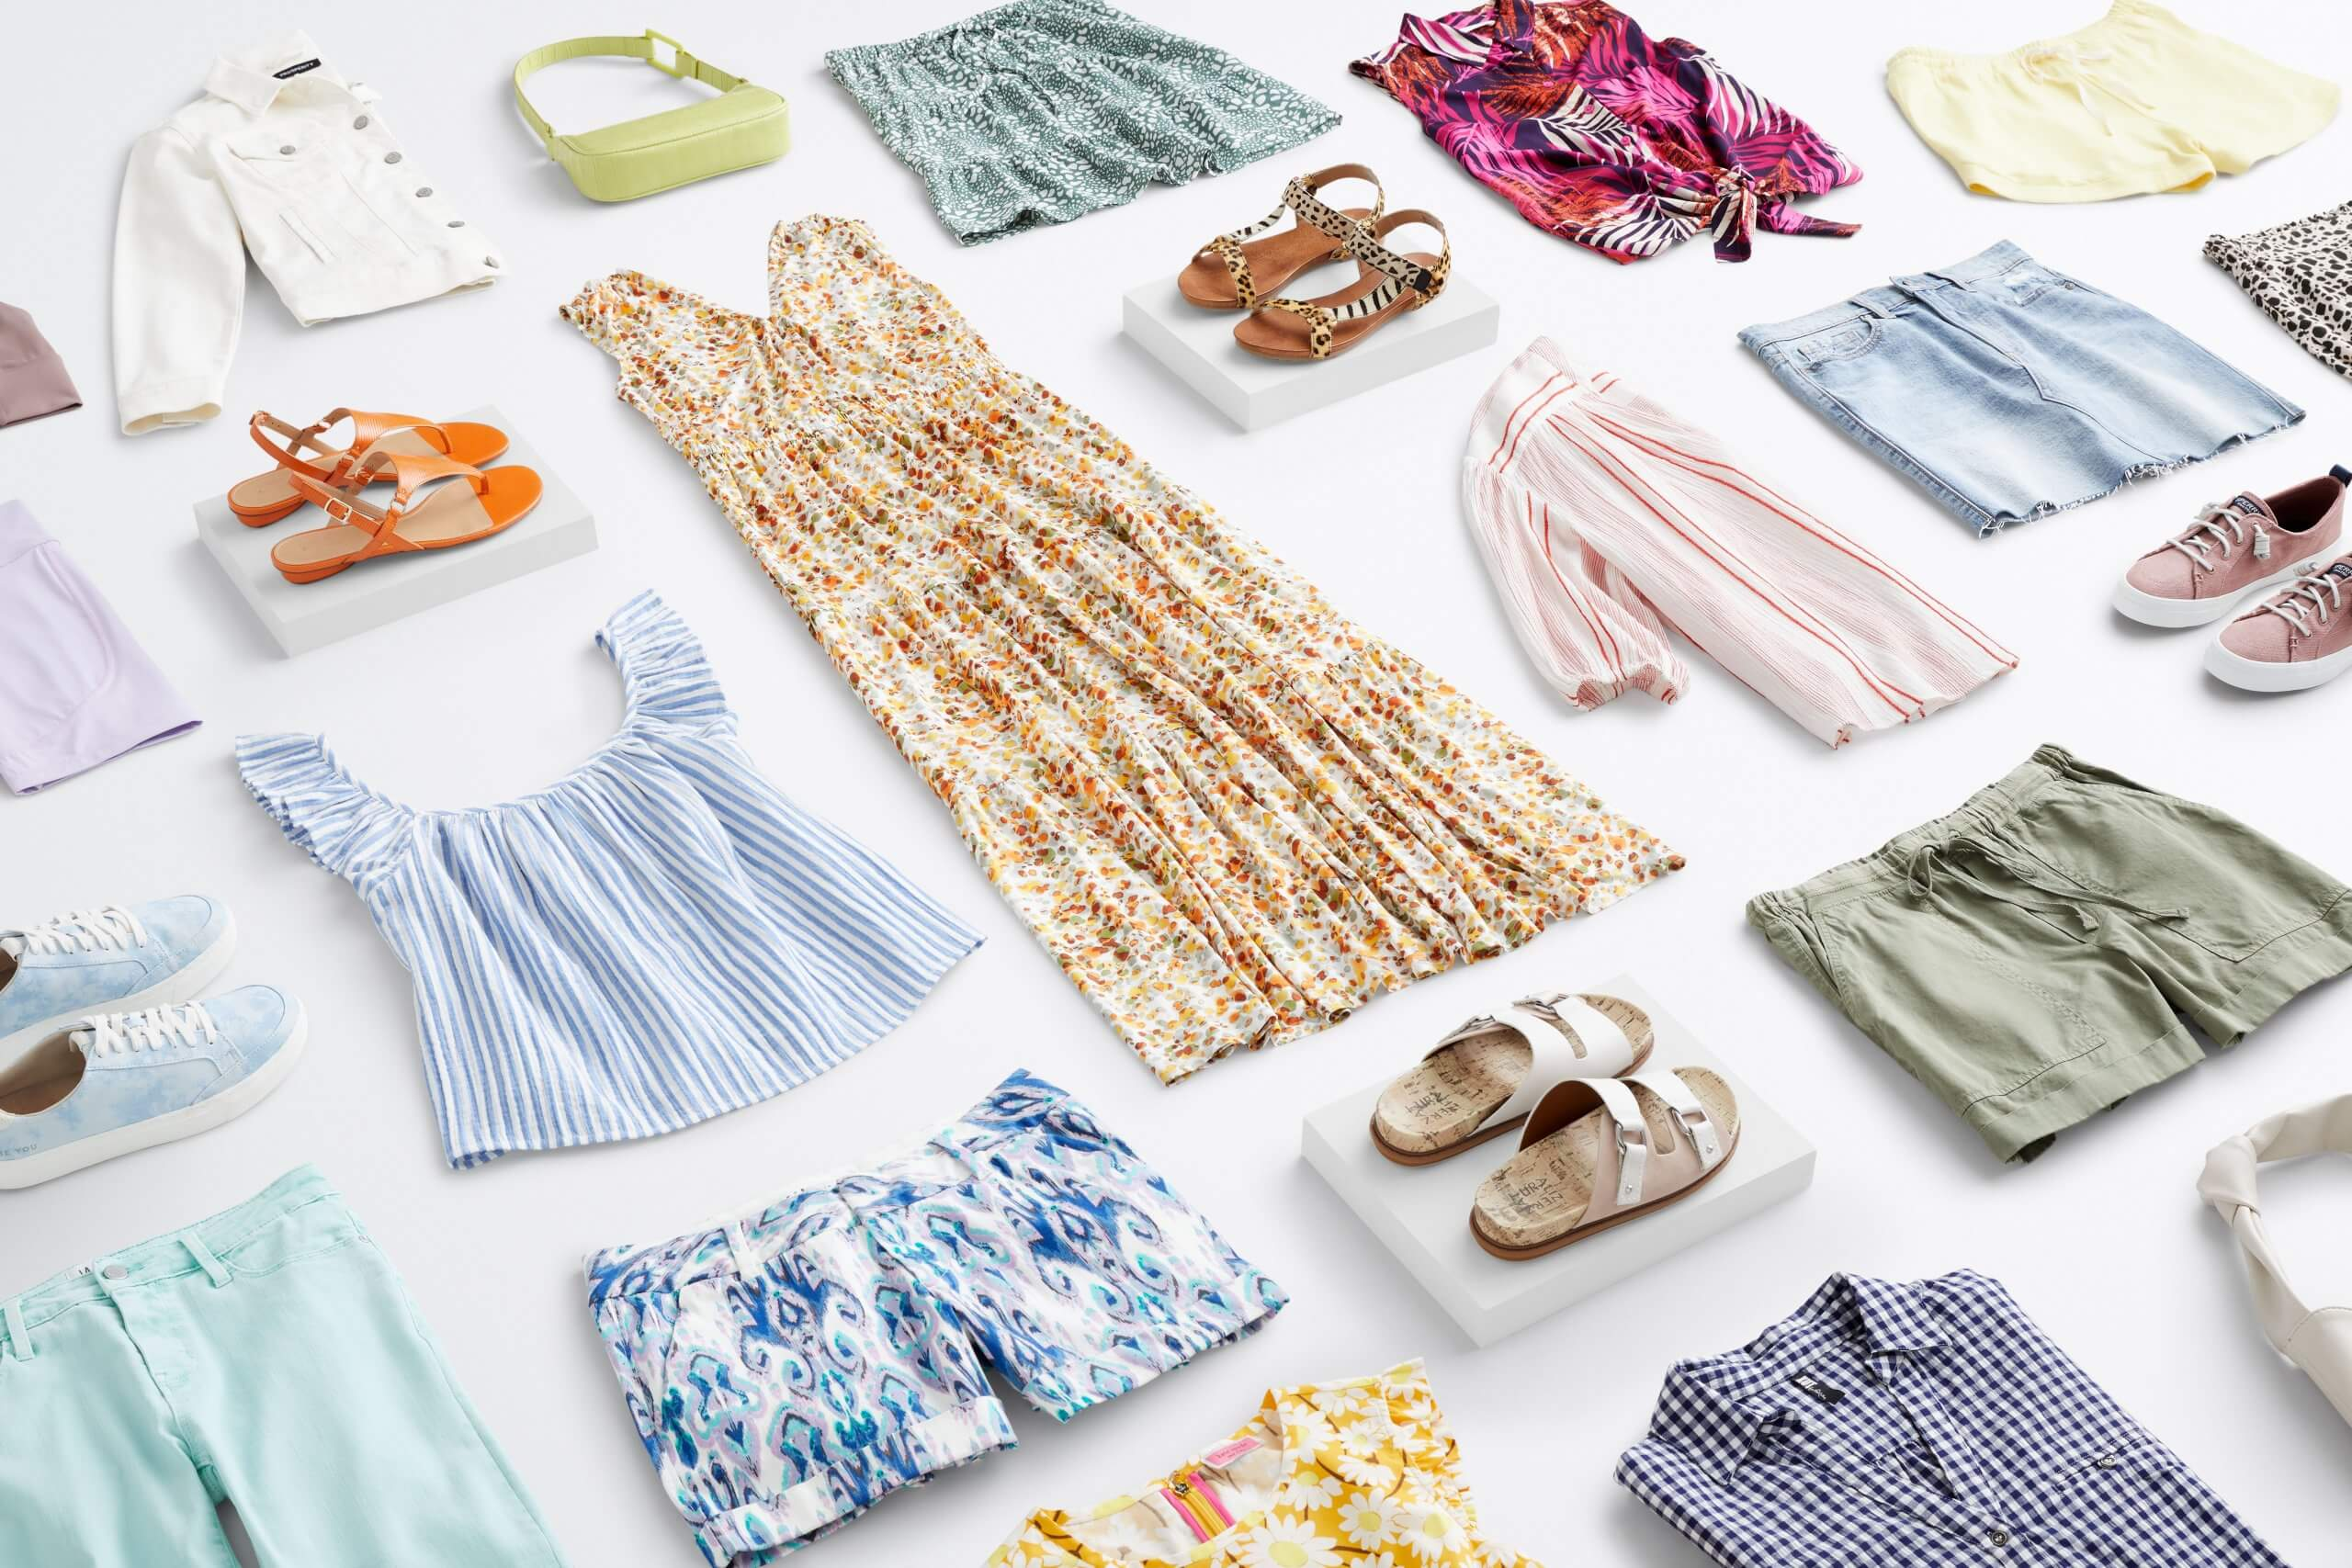 Stitch Fix Women's outfit laydown featuring a wide range of summer pieces including white denim jacket, shorts and skirts in blue, green and yellow tones, printed tank tops, floral maxi dress, sandals and sneakers in various tones.